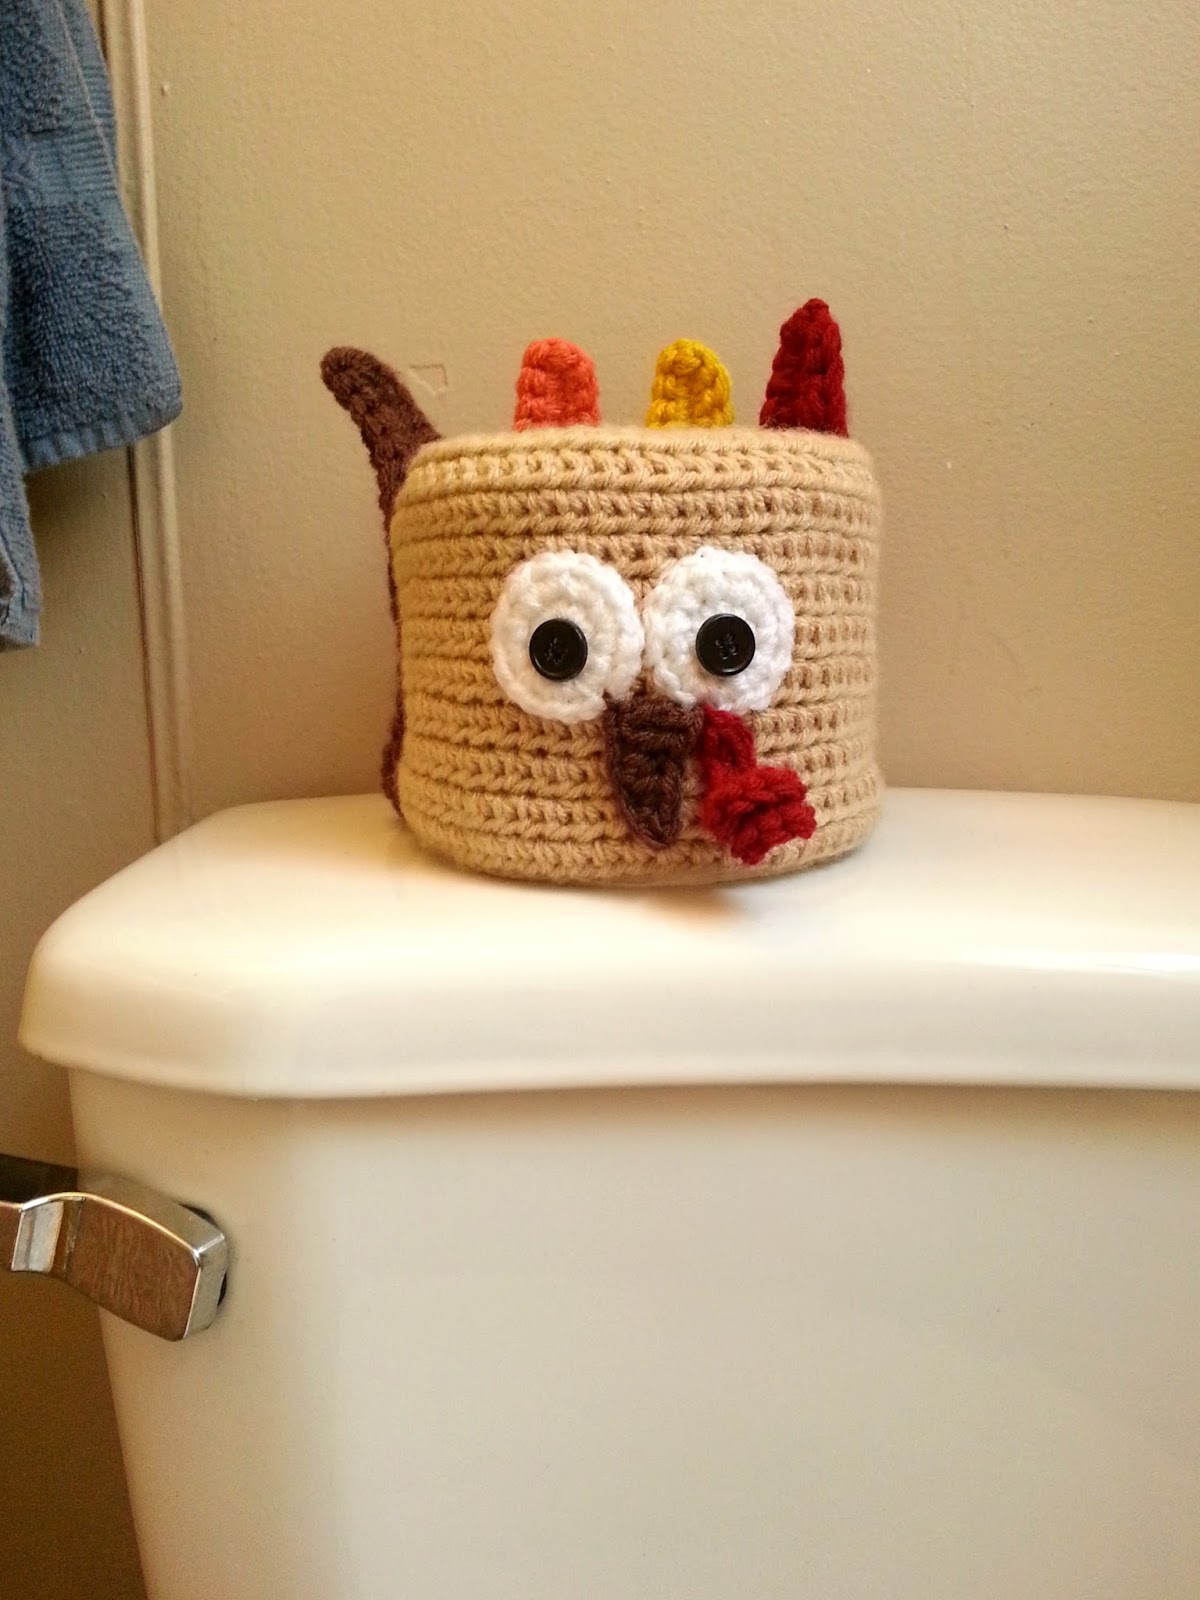 Toilet paper turkey craft for Thanksgiving decor Cuppastitches Thanksgiving Turkey Crochet Toilet Paper Roll Cover